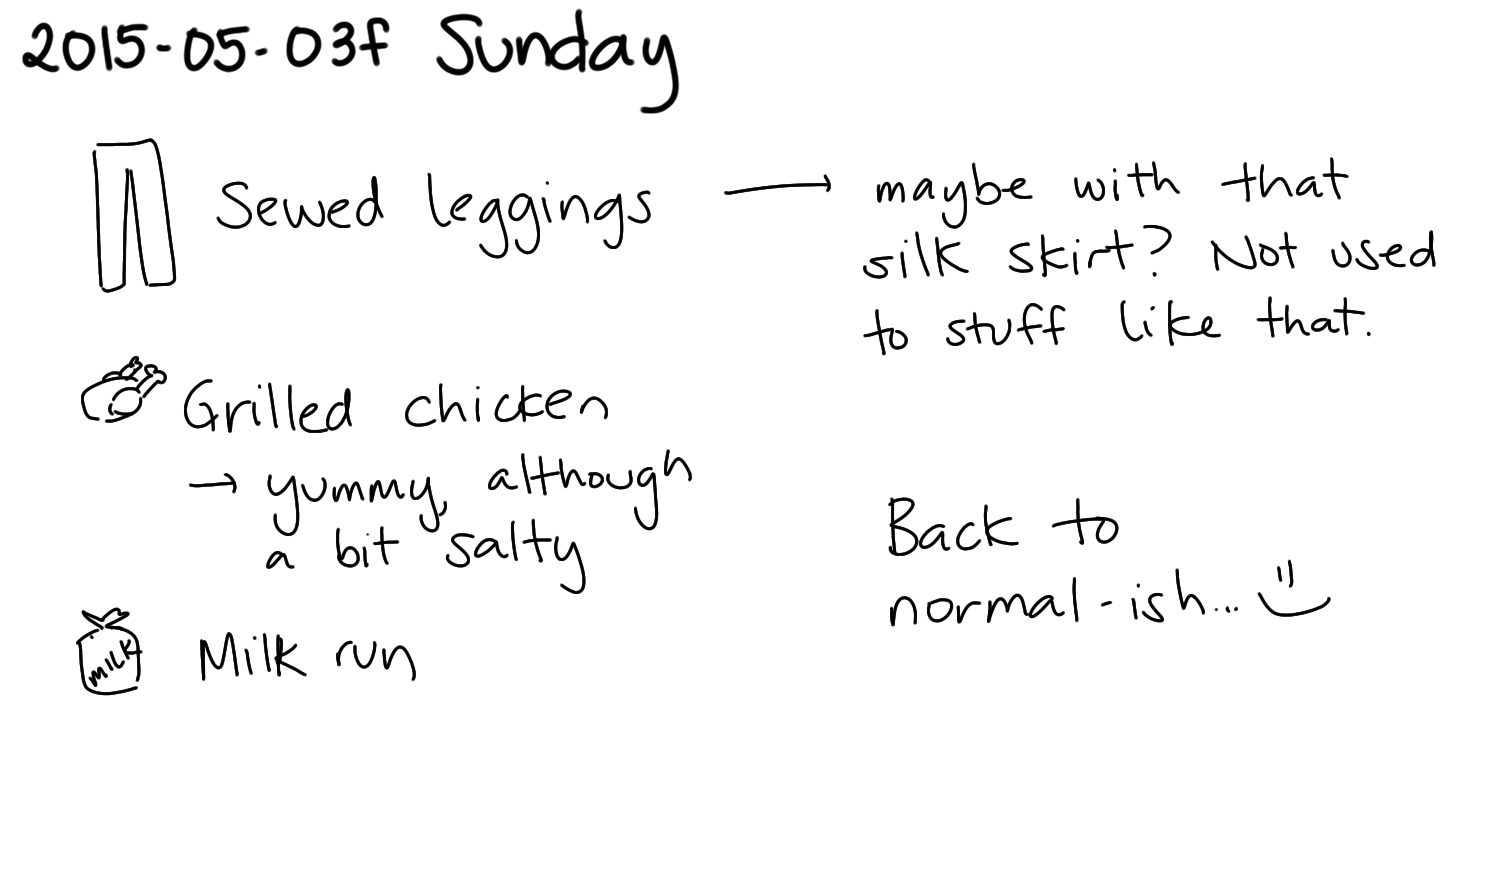 2015-05-03f Sunday -- index card #journal.png